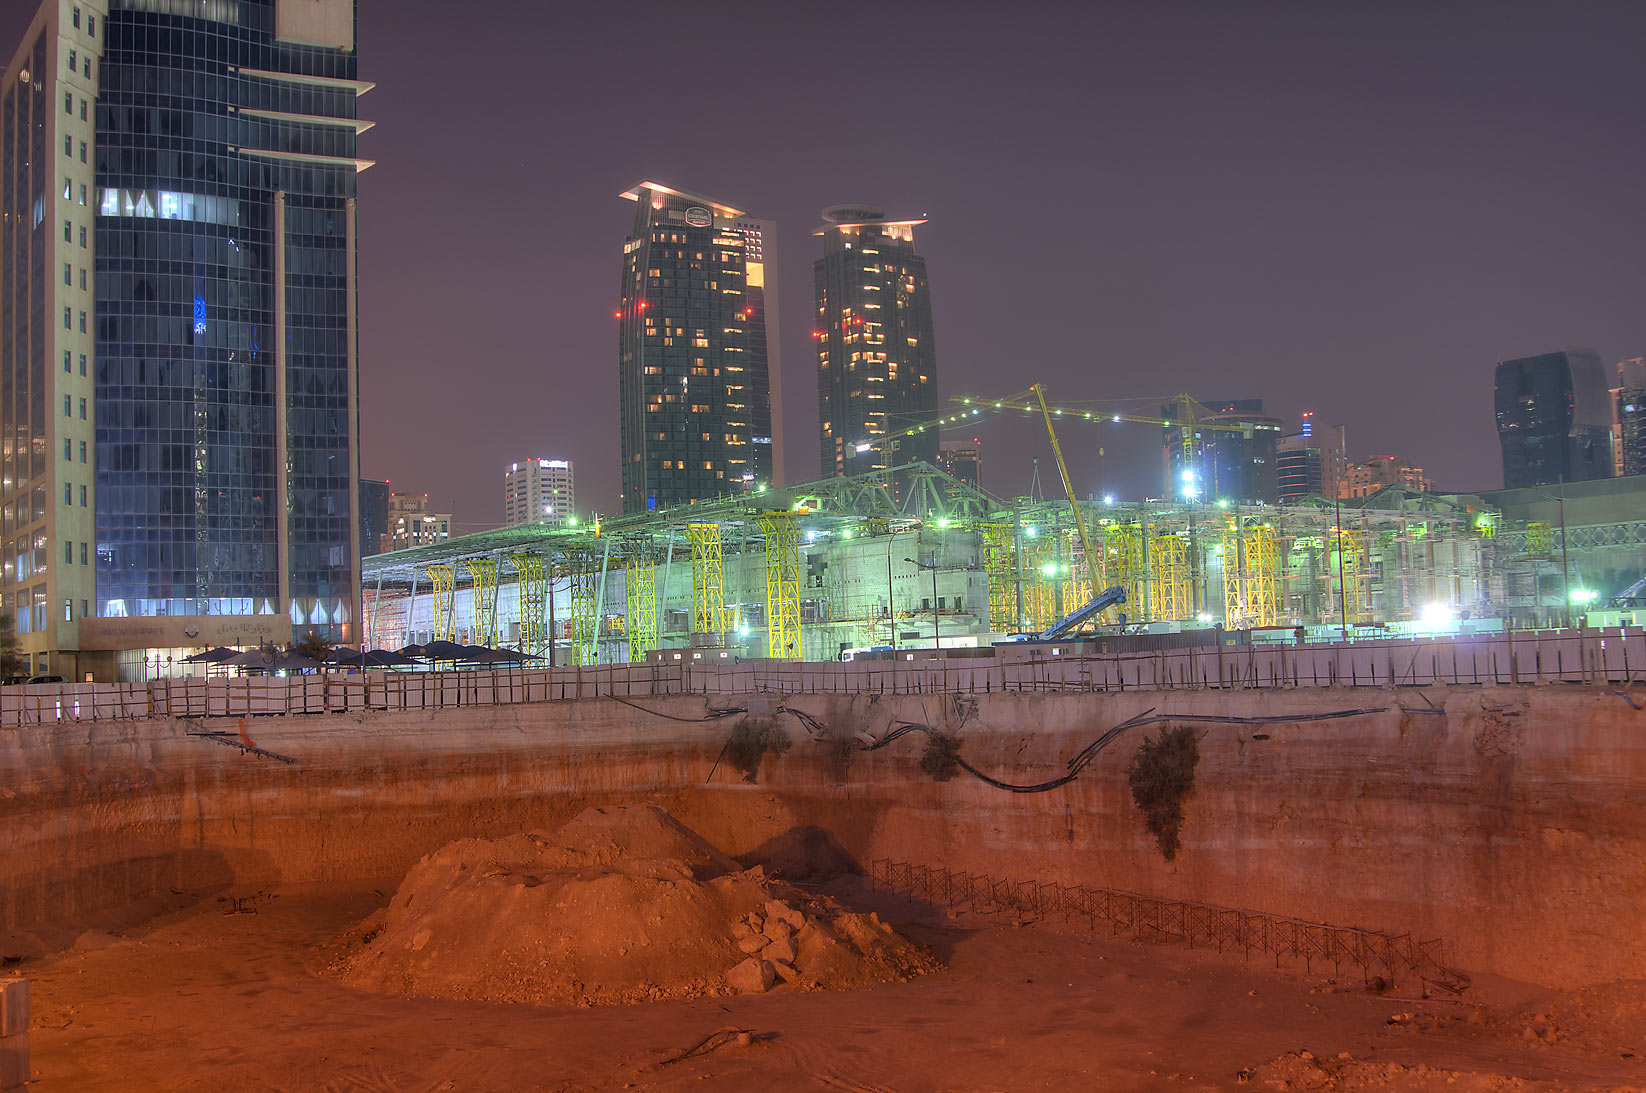 Convention Center and Tower Project, with Mariott Hotel in background. Doha, Qatar